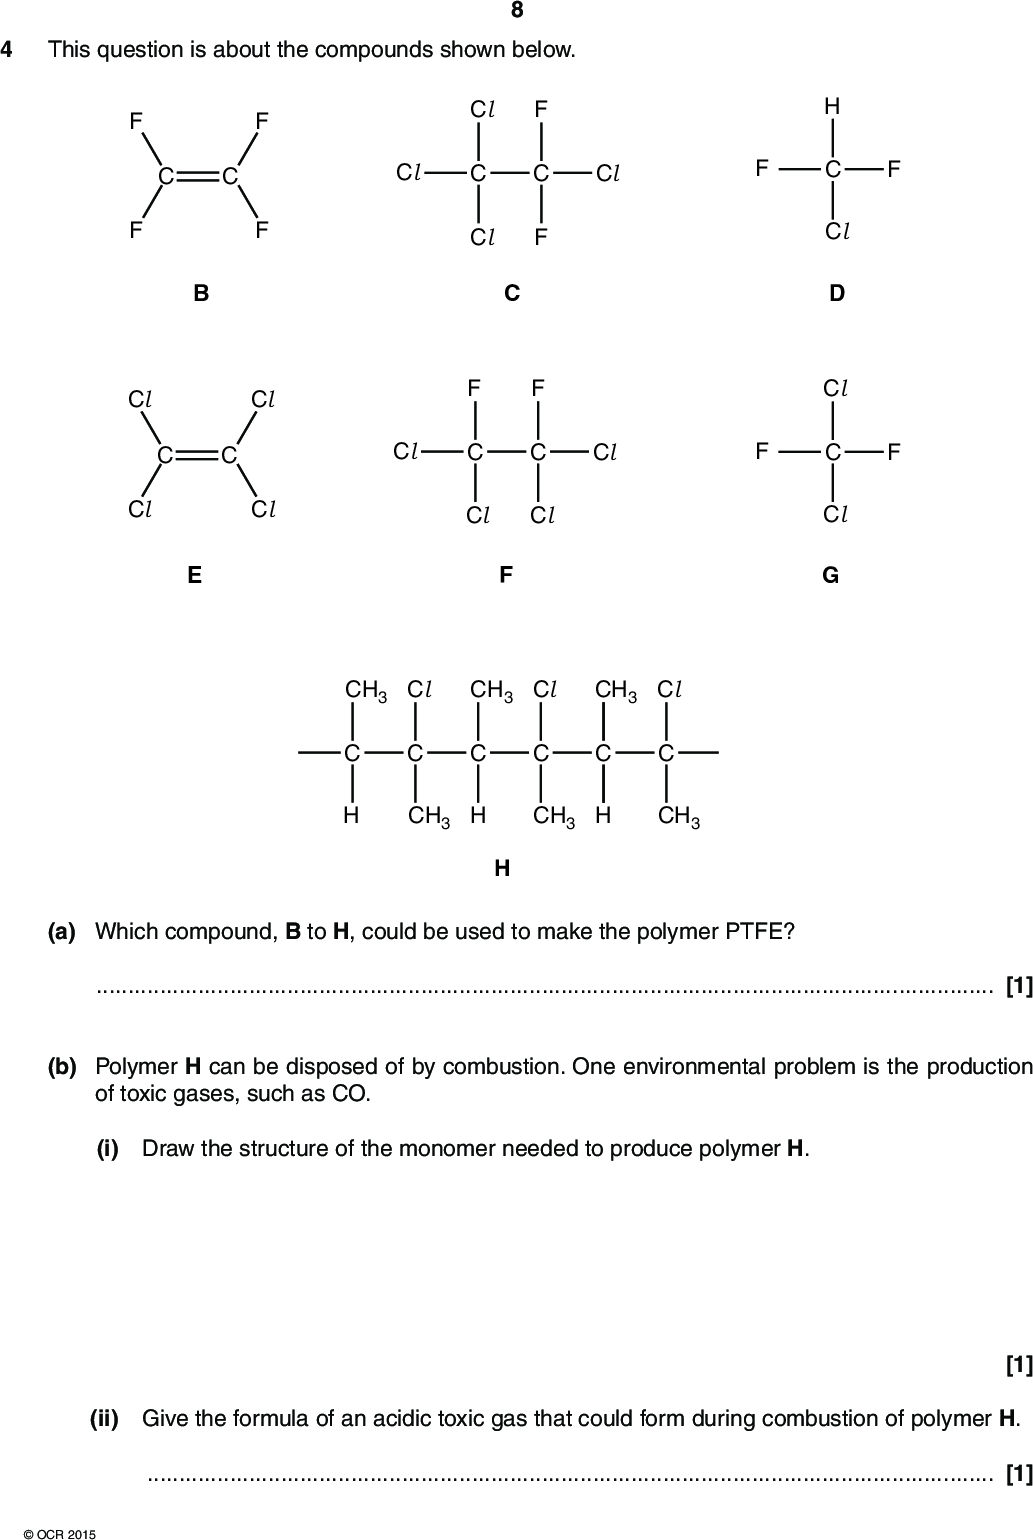 This question is about the compounds shown below. Cl Cl Cl Cl (cid:37) (cid:40) Cl Cl Cl Cl Cl Cl (cid:38) Cl Cl (cid:41) Cl (cid:39) Cl Cl (cid:42) CH3 Cl CH3 Cl CH3 Cl CH3 H CH3 H CH3 (cid:43) (a) Which compound, B to H, could be used to make the polymer PTFE?[1] (b) Polymer H can be disposed of by combustion. One environmental problem is the production of toxic gases, such as CO. (i) Draw the structure of the monomer needed to produce polymer H. (ii) Give the formula of an acidic toxic gas that could form during combustion of polymer H.[1] [1]OCR 2015<br />  (c) Compound G was once used as a propellant in aerosols. Compound G has been linked with depletion of the ozone layer in the stratosphere. (i) State two properties that made compound G suitable for use as an aerosol. 12[1] (ii) Explain the following statements, using equations where appropriate. Life on Earth benefits from the presence of an ozone layer. The concentration of ozone is maintained in the ozone layer.Compound G produces radicals which catalyse the breakdown of ozone.[5] (iii) Alternative ozone-friendly compounds are now used as propellants instead of compound G. Which compound, B to H, might be suitable as an ozone-friendly propellant?[1]OCR 2015 Turn over<br />  (d) Compounds C and F can be analysed to obtain infrared and mass spectra. 10 Cl Cl Cl Cl Cl (cid:38) Cl Cl Cl (cid:41) (i) What happens to molecules when infrared radiation is absorbed?[1] (ii) Suggest the molecular formulae of two ions responsible for peaks in the mass spectrum of C that are not in the mass spectrum of F.[2] [Total: 13]OCR 2015<br />  11 BLANK PAGE Question 5 starts on page 12 PLEASE DO NOT WRITE ON THIS PAGEOCR 2015 Turn over<br />